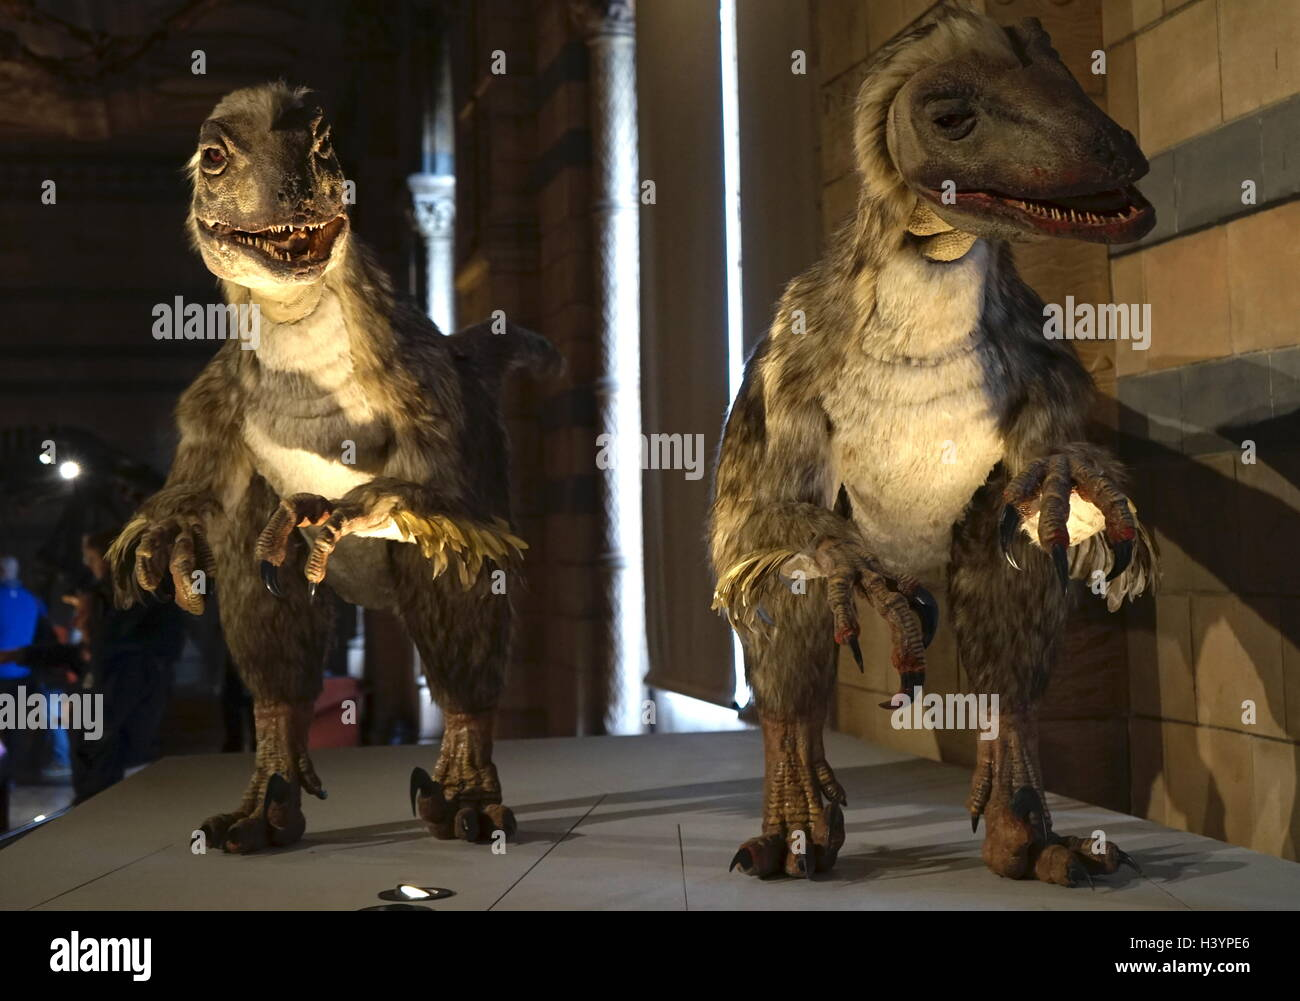 Model of Deinonychus a genus of carnivorous dromaeosaurid coelurosaurian dinosaurs. Dated 21st Century - Stock Image